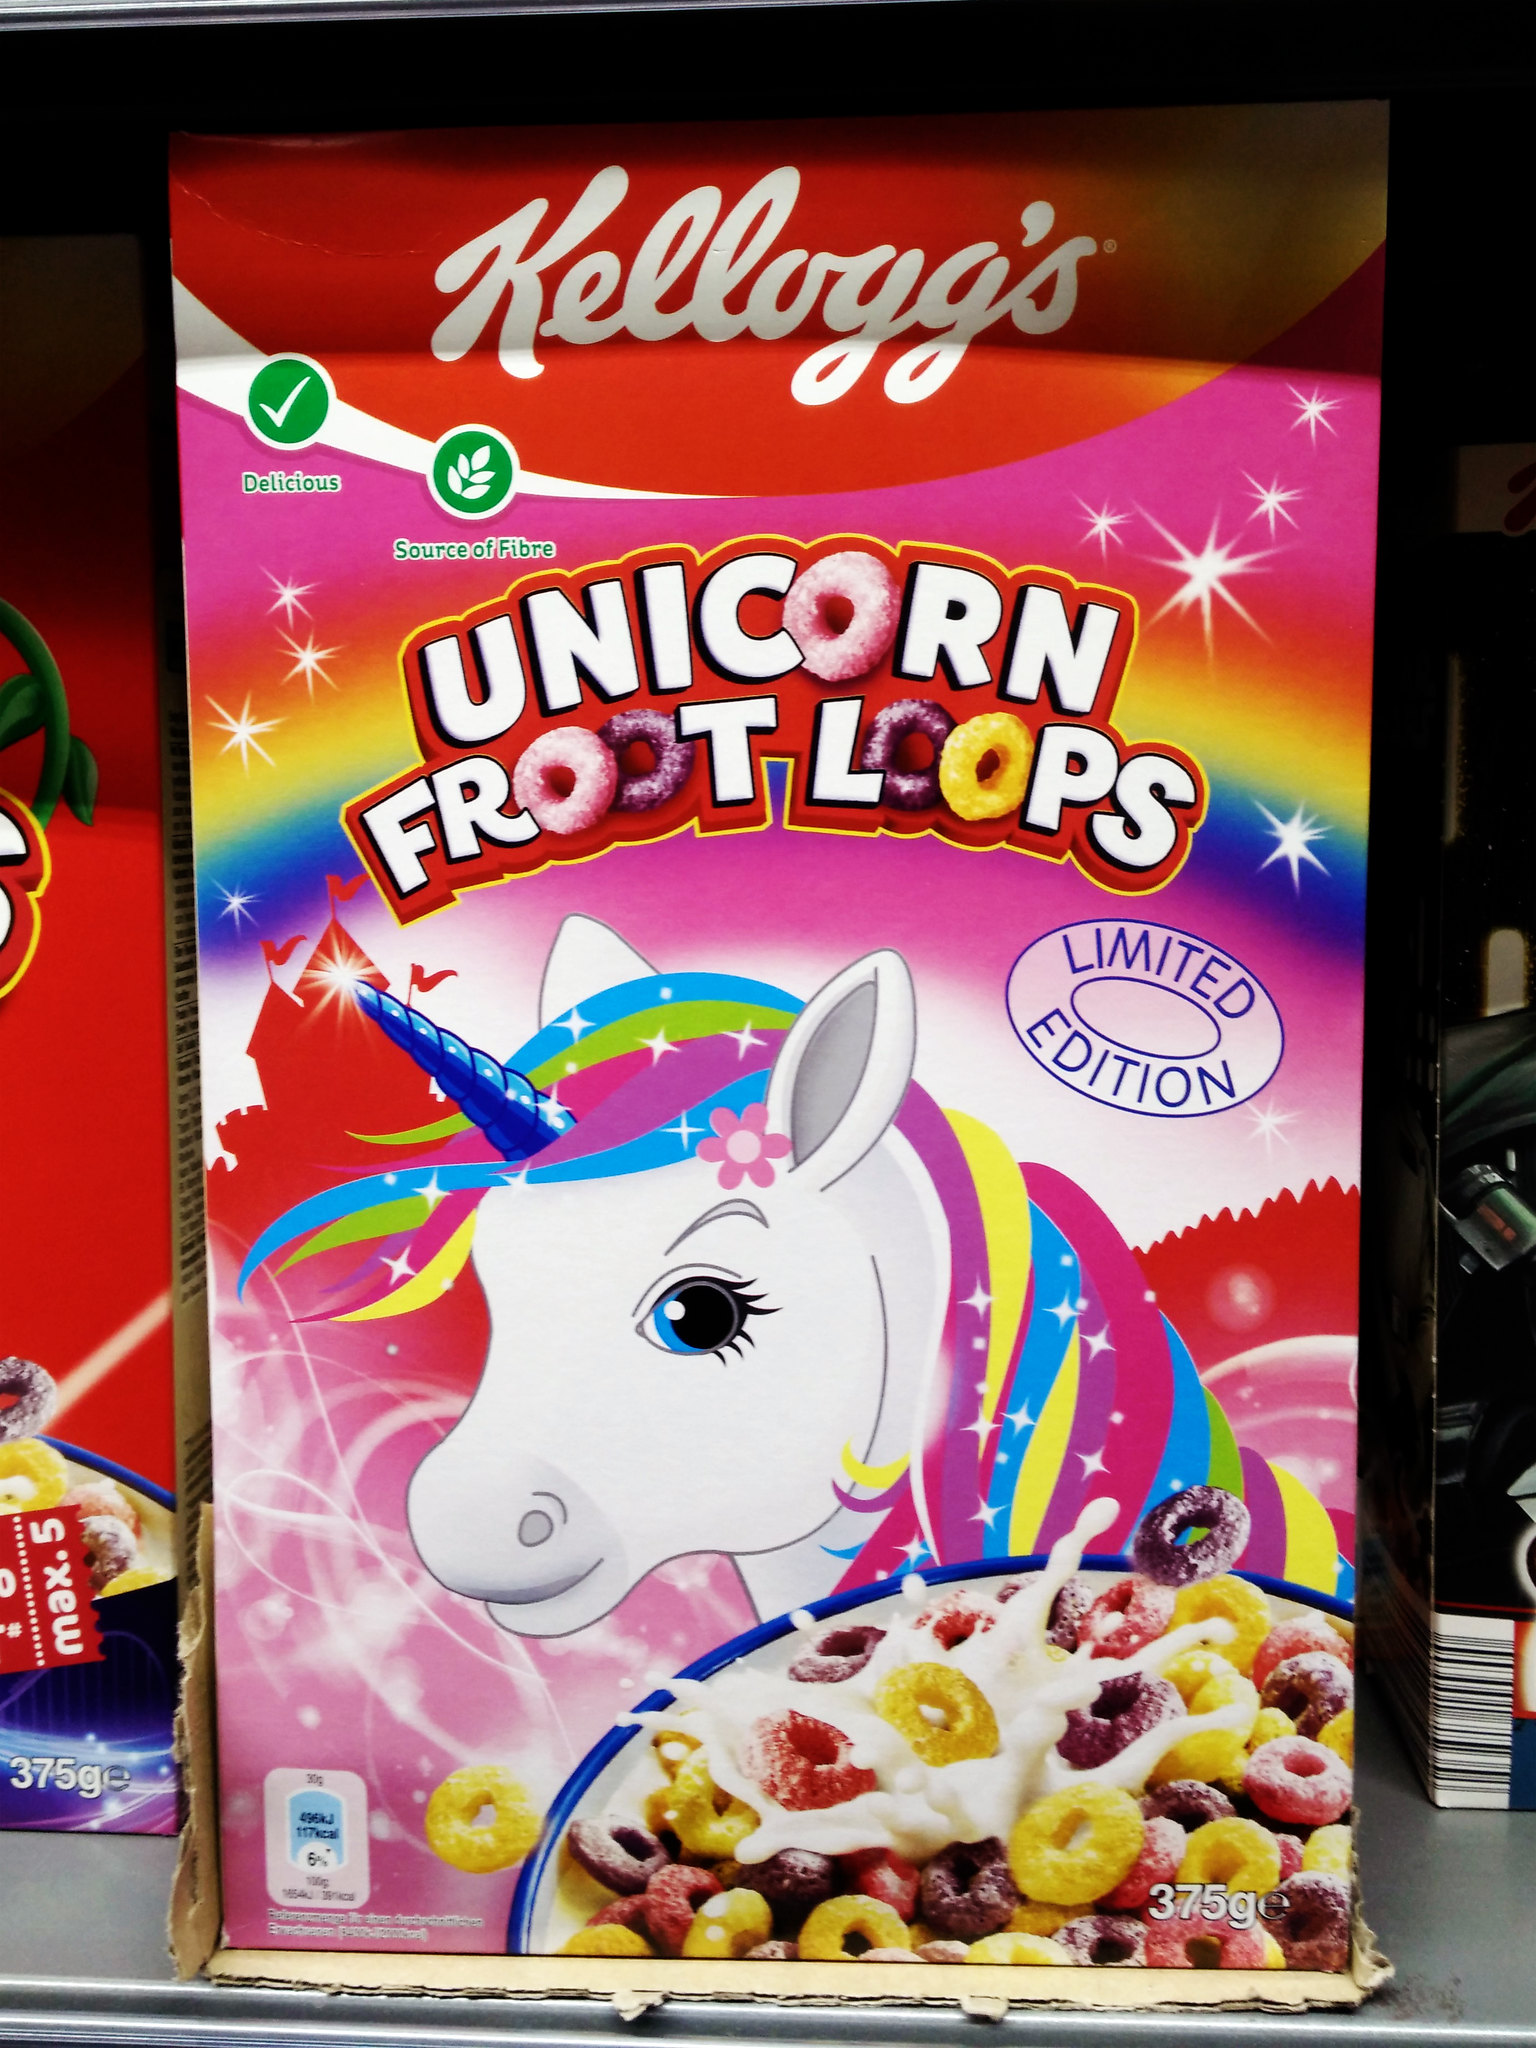 Kellogg's Unicorn Froot Loops (Limited Edition)